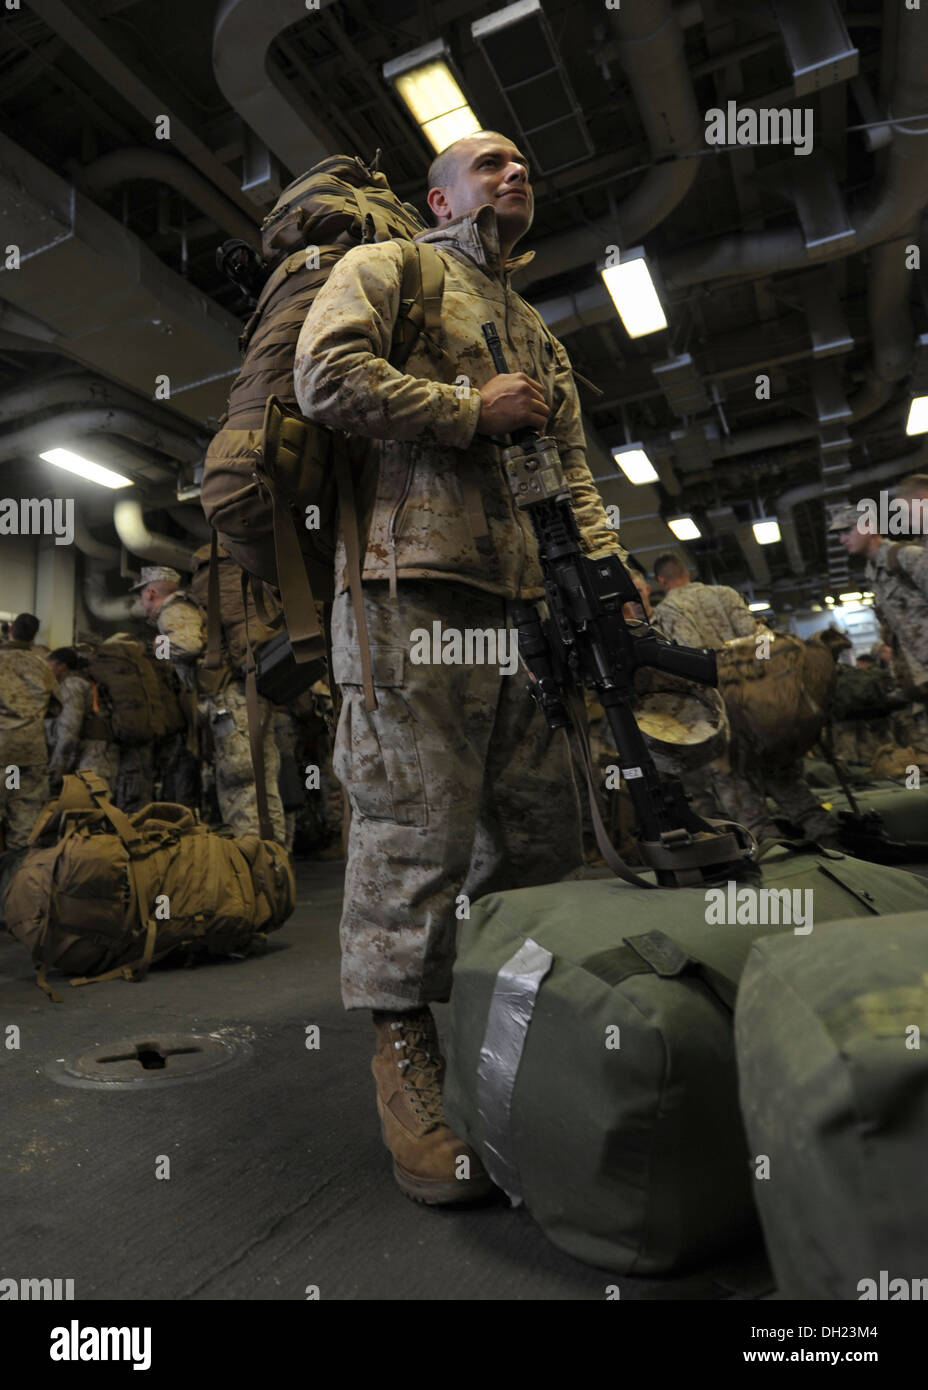 Staff Sgt. Johny Gutierrez, from Knoxville, Tenn. awaits further instructions after arriving aboard the multipurpose amphibious - Stock Image